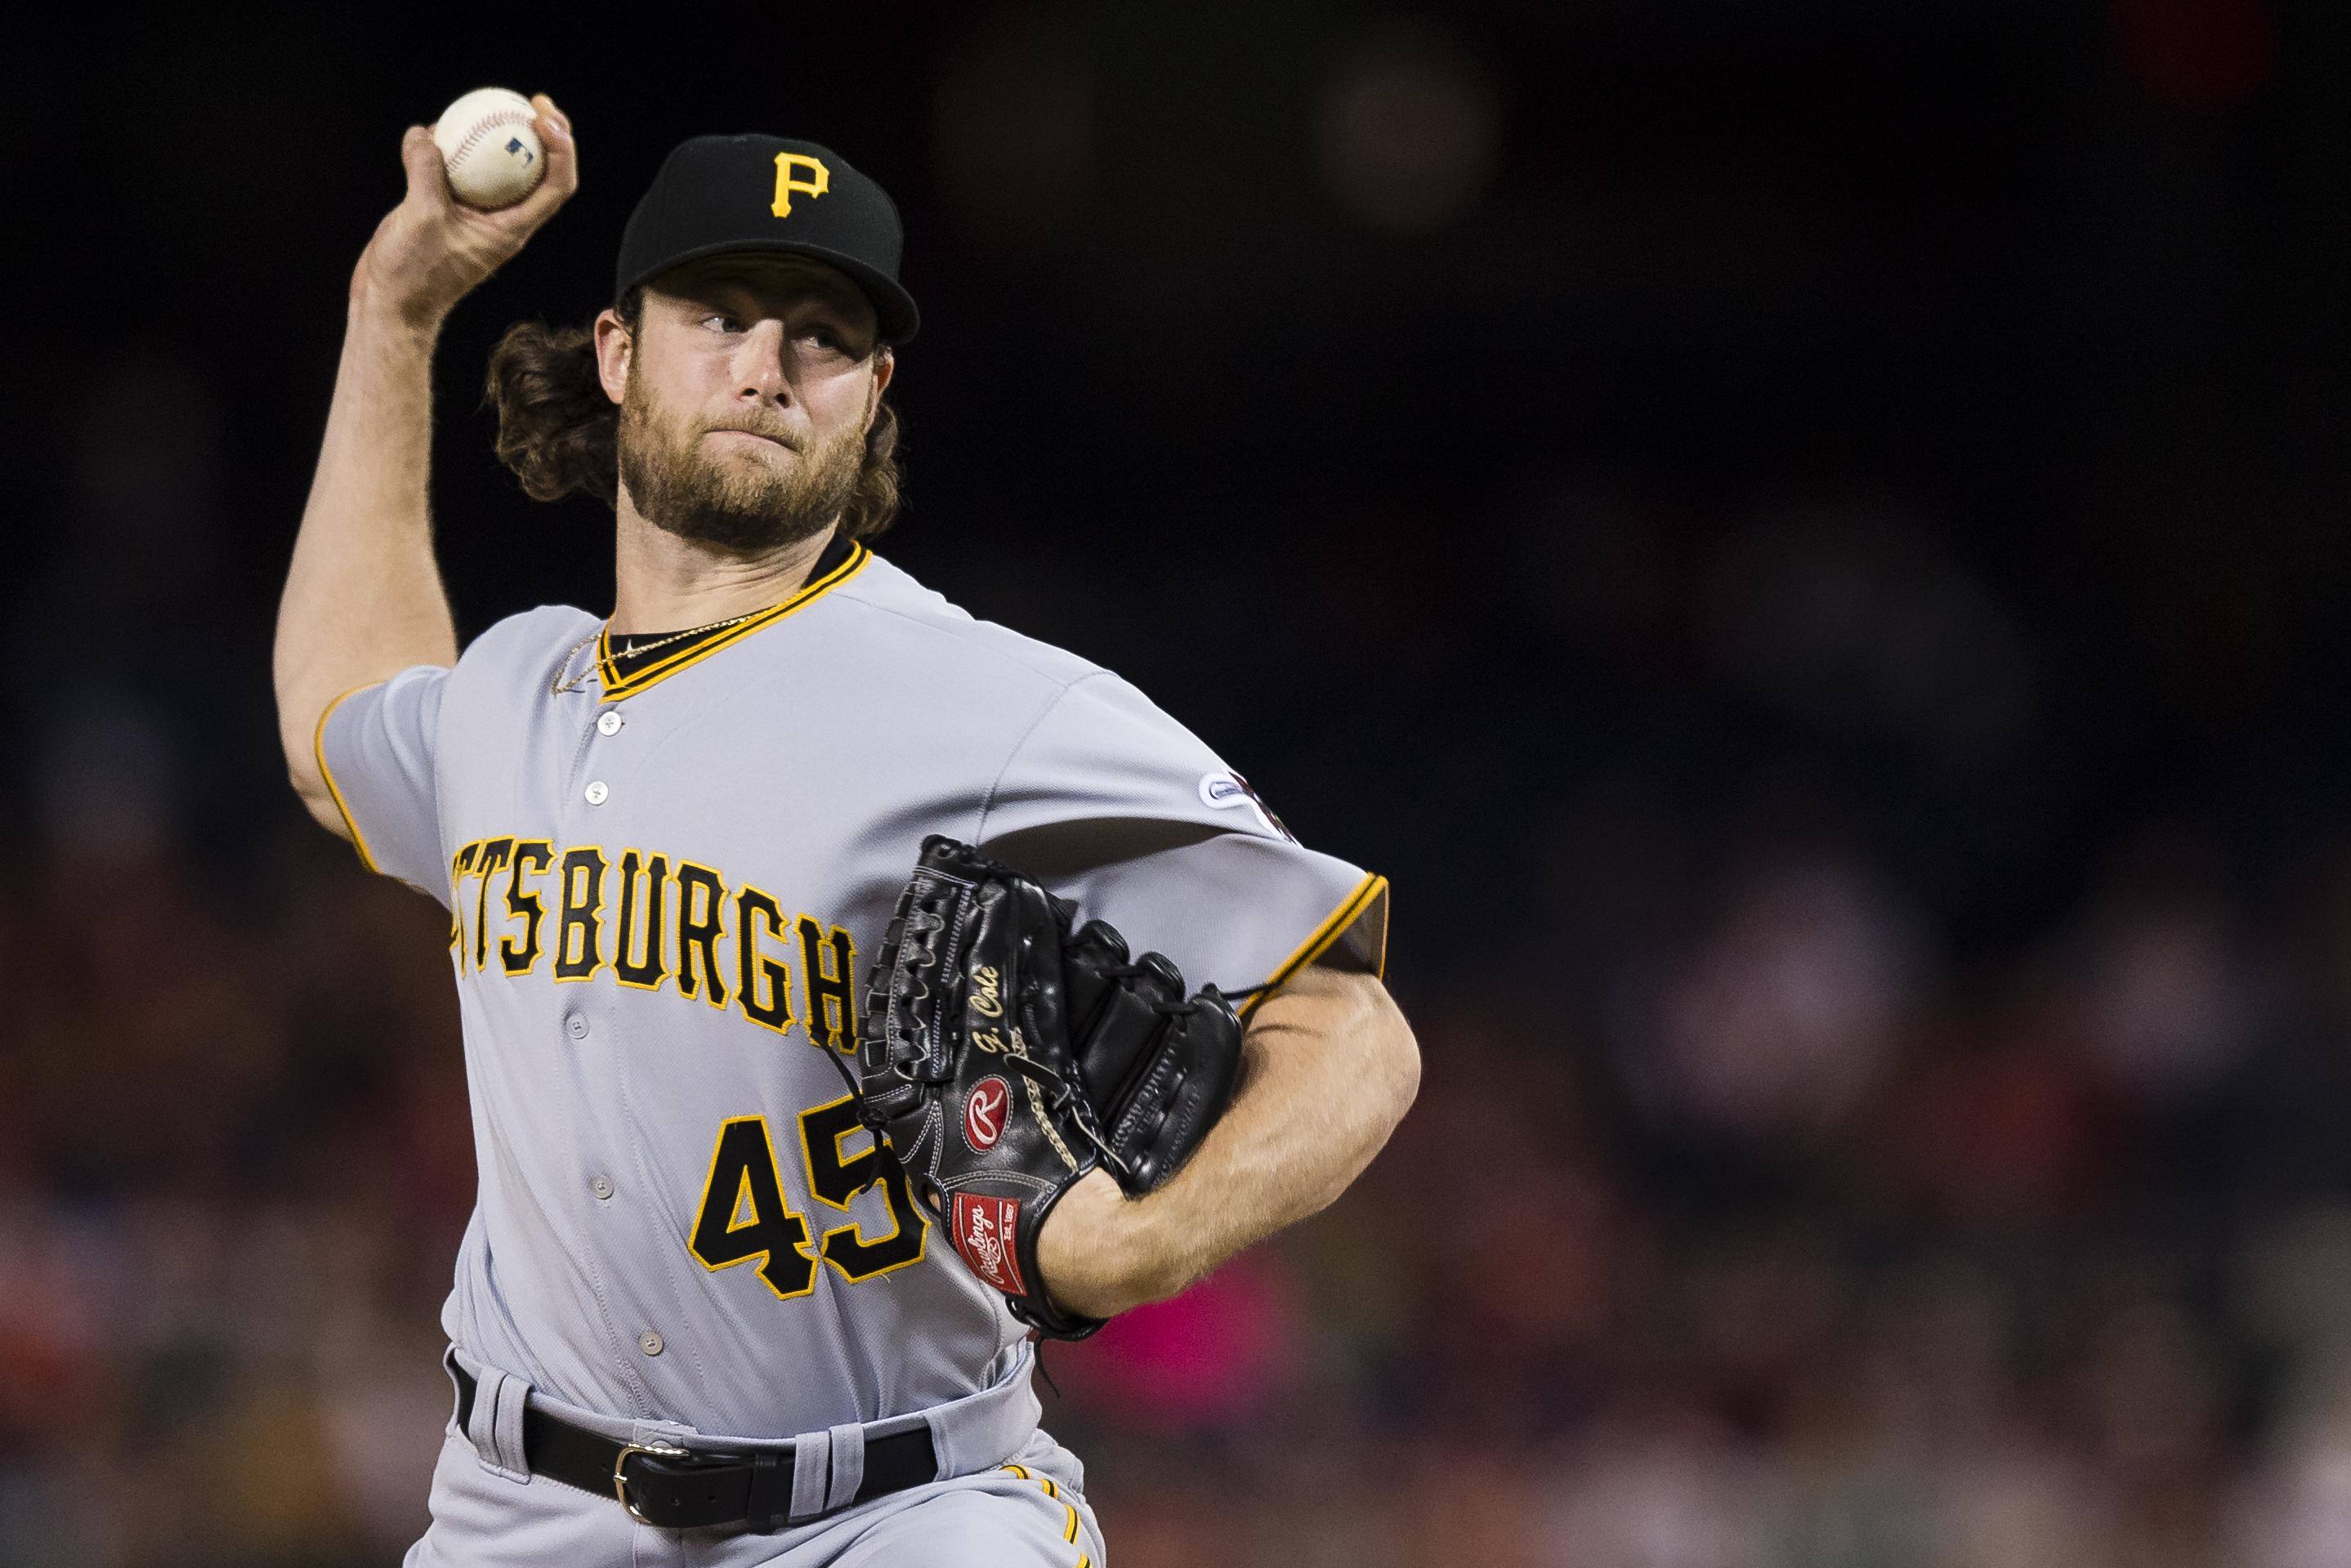 Yankees Working to Acquire Gerrit Cole From the Pirates